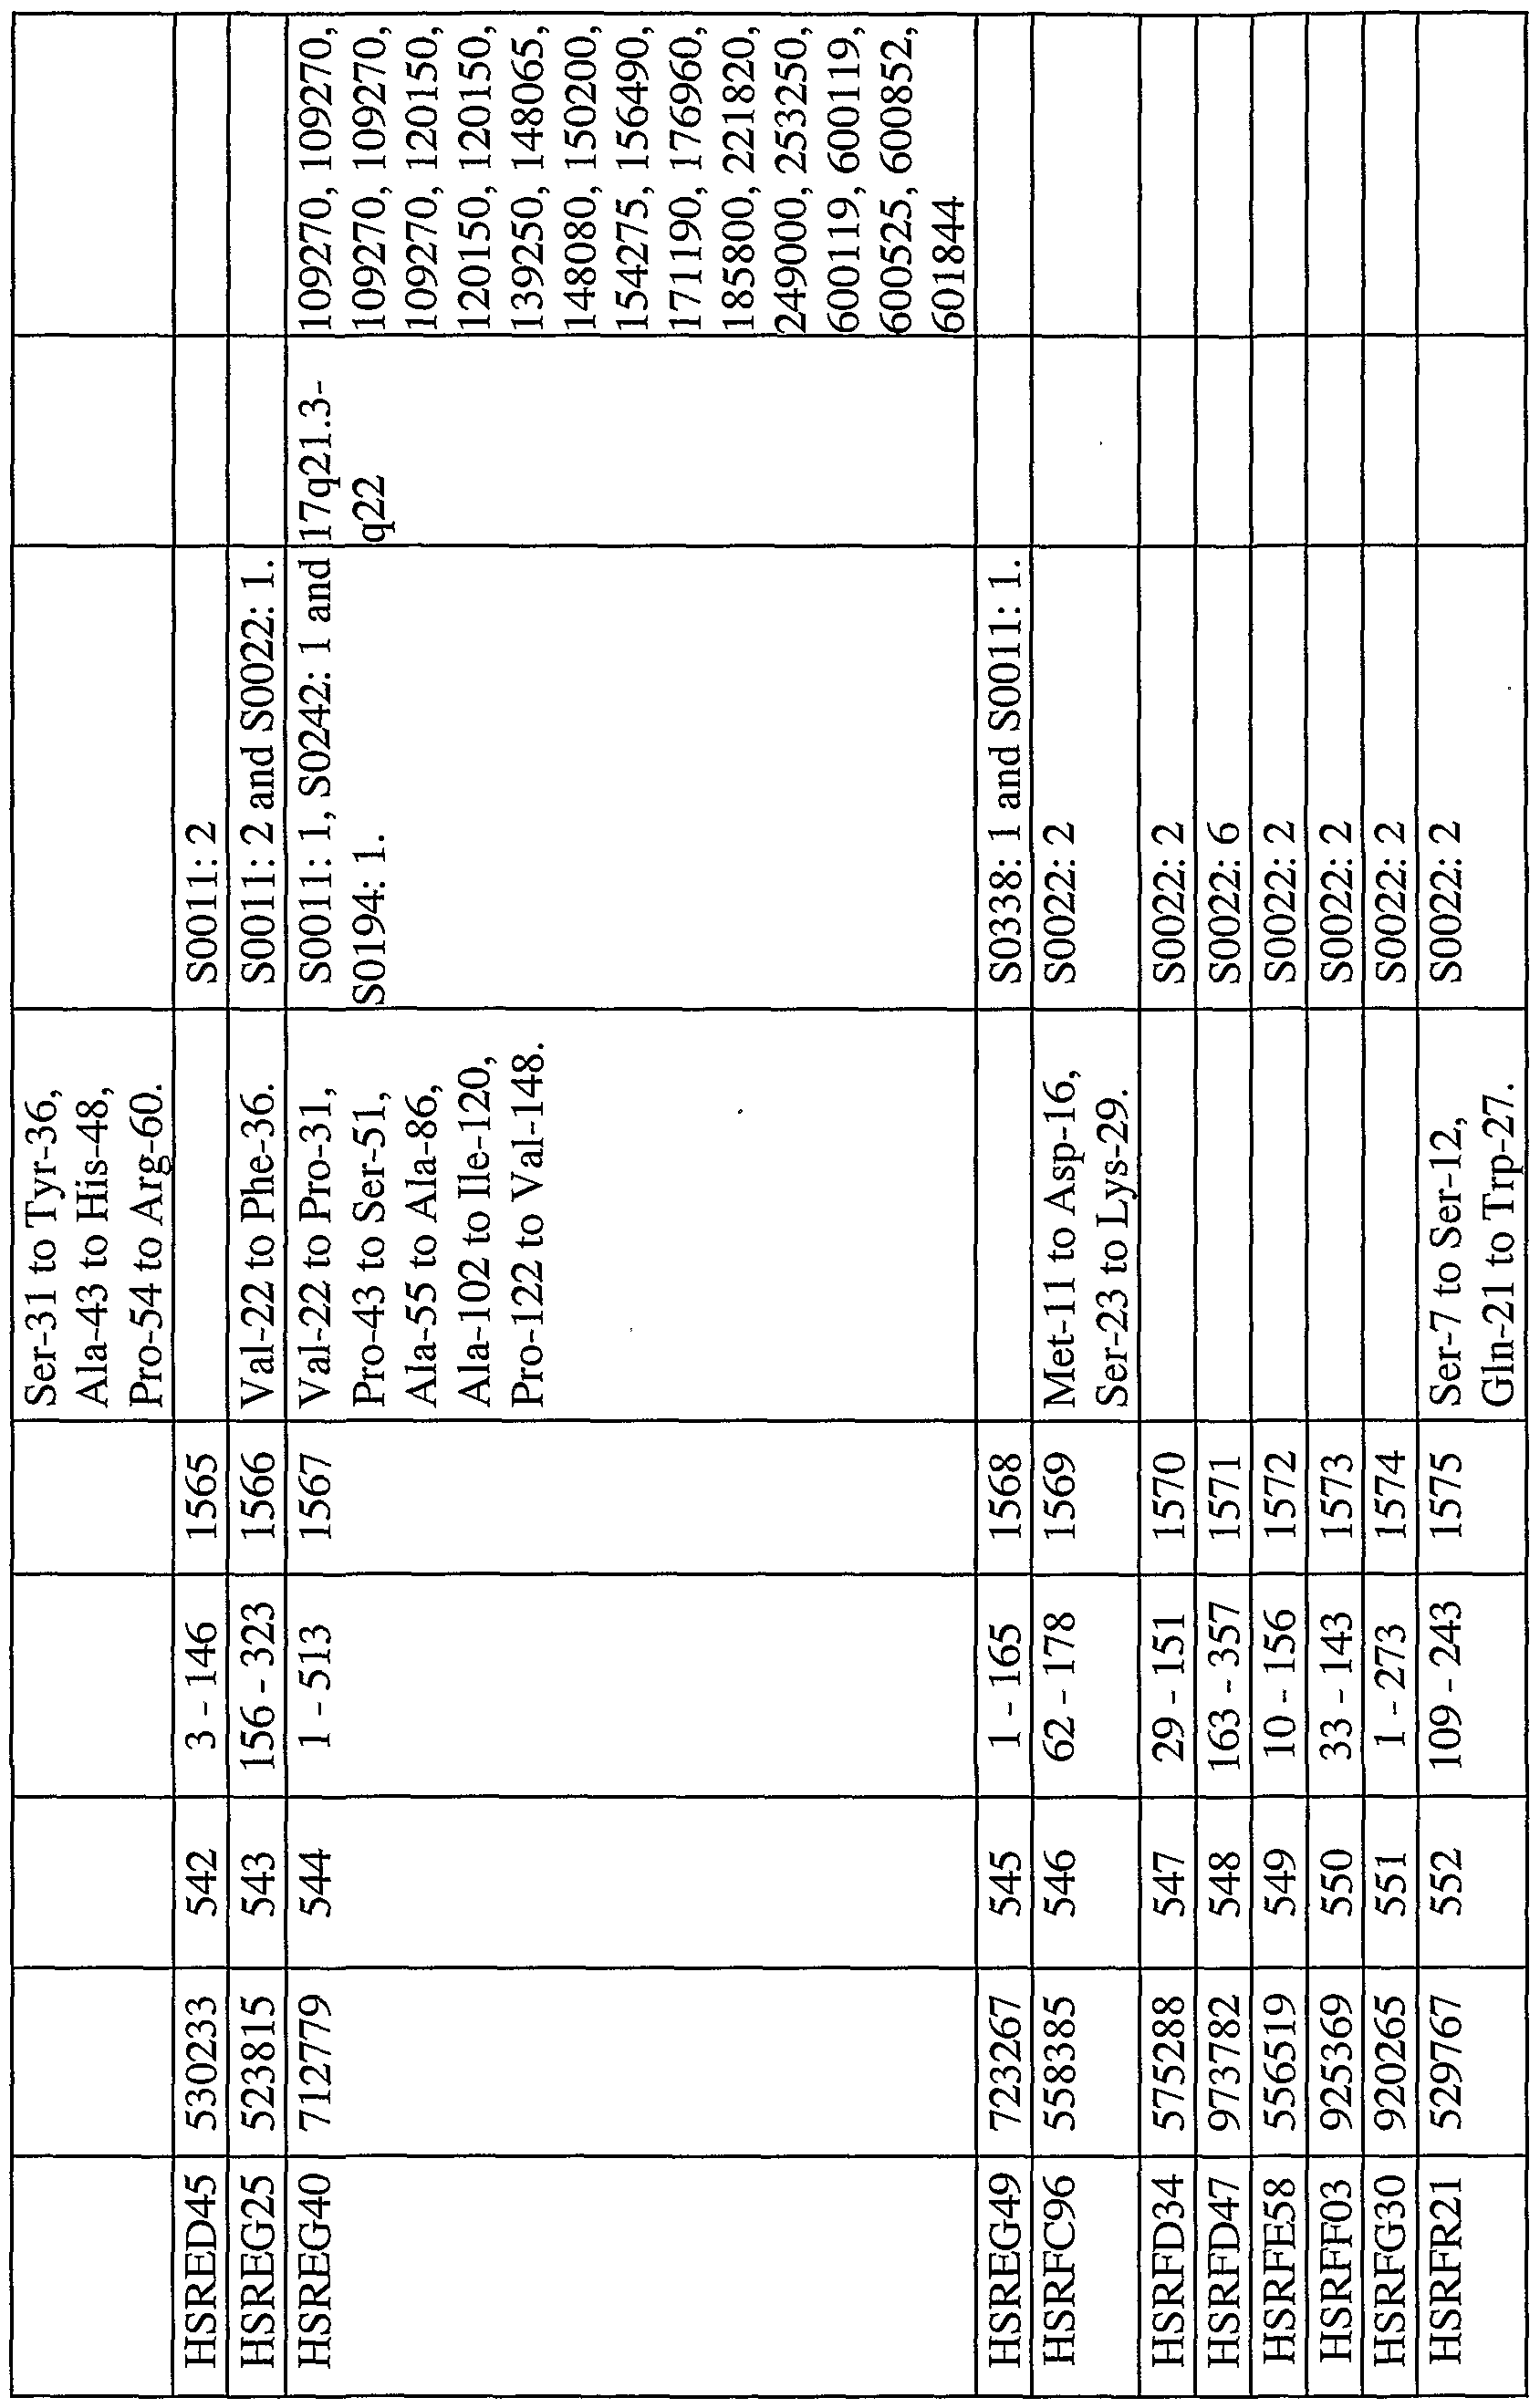 Wo2001055367a1 Nucleic Acids Proteins And Antibodies Google